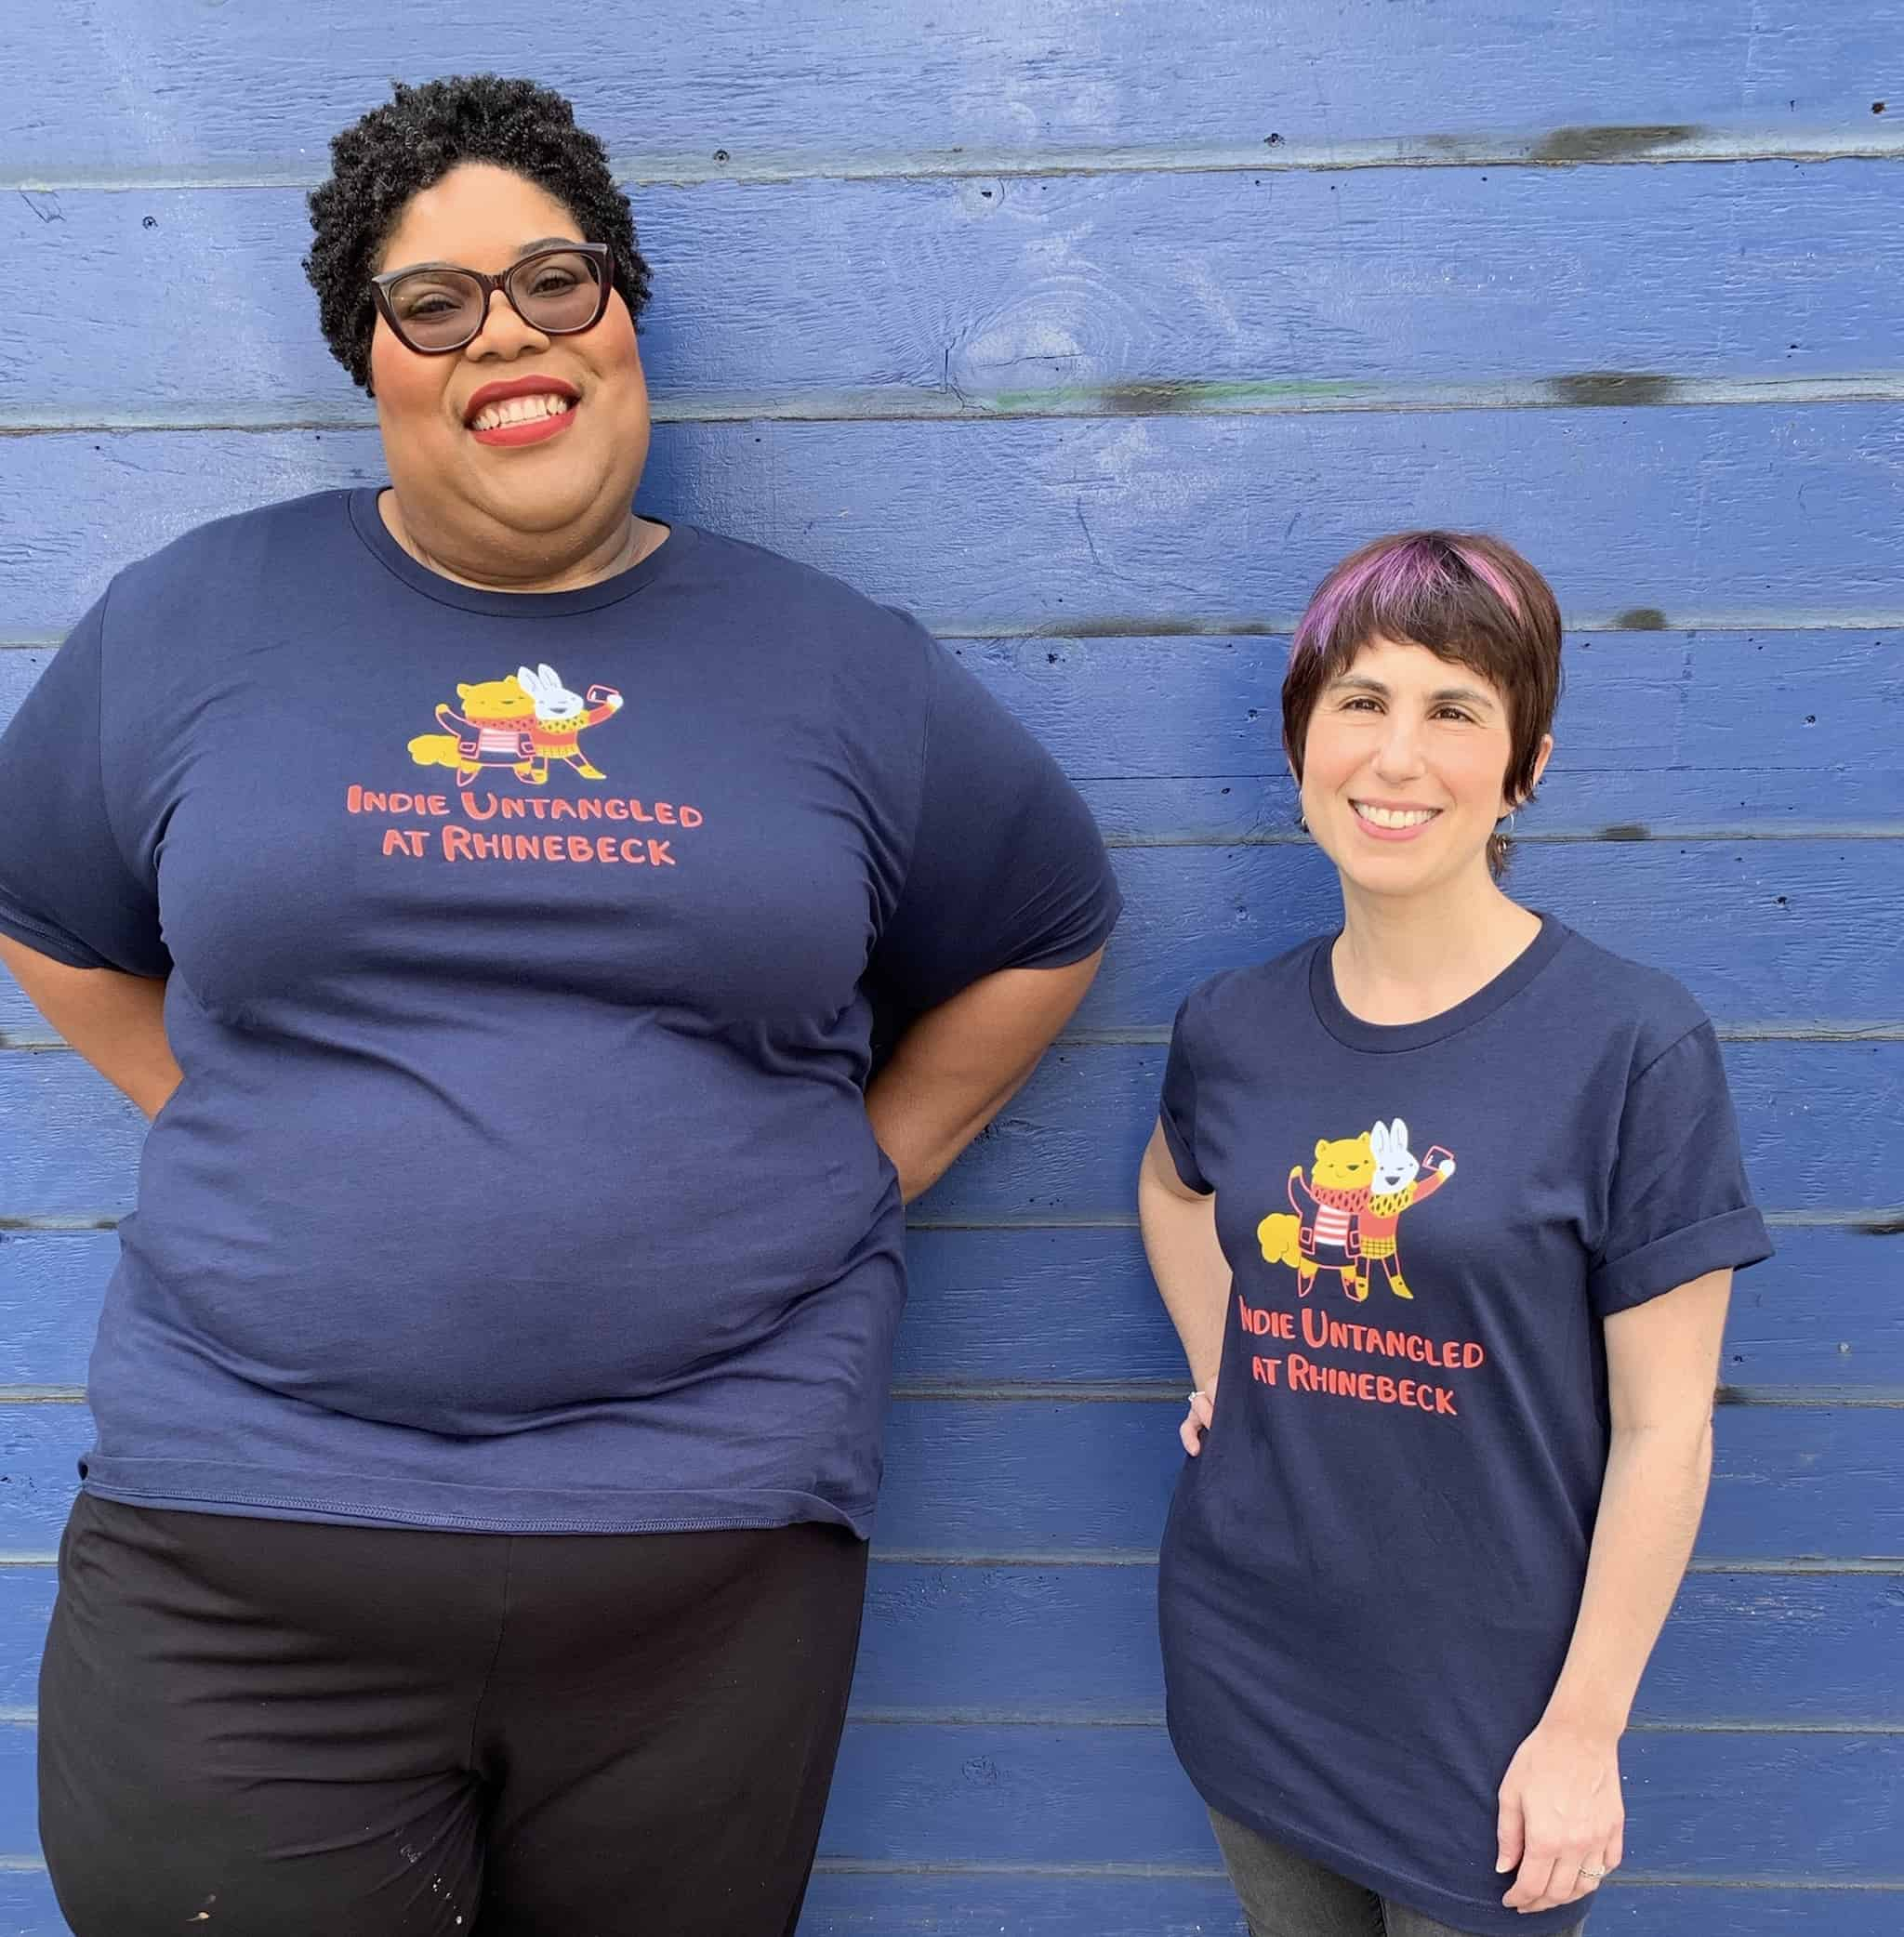 An African American, plus-sized woman with curly hair and a petite Caucasian woman with a pixie cut model matching navy T-shirts.